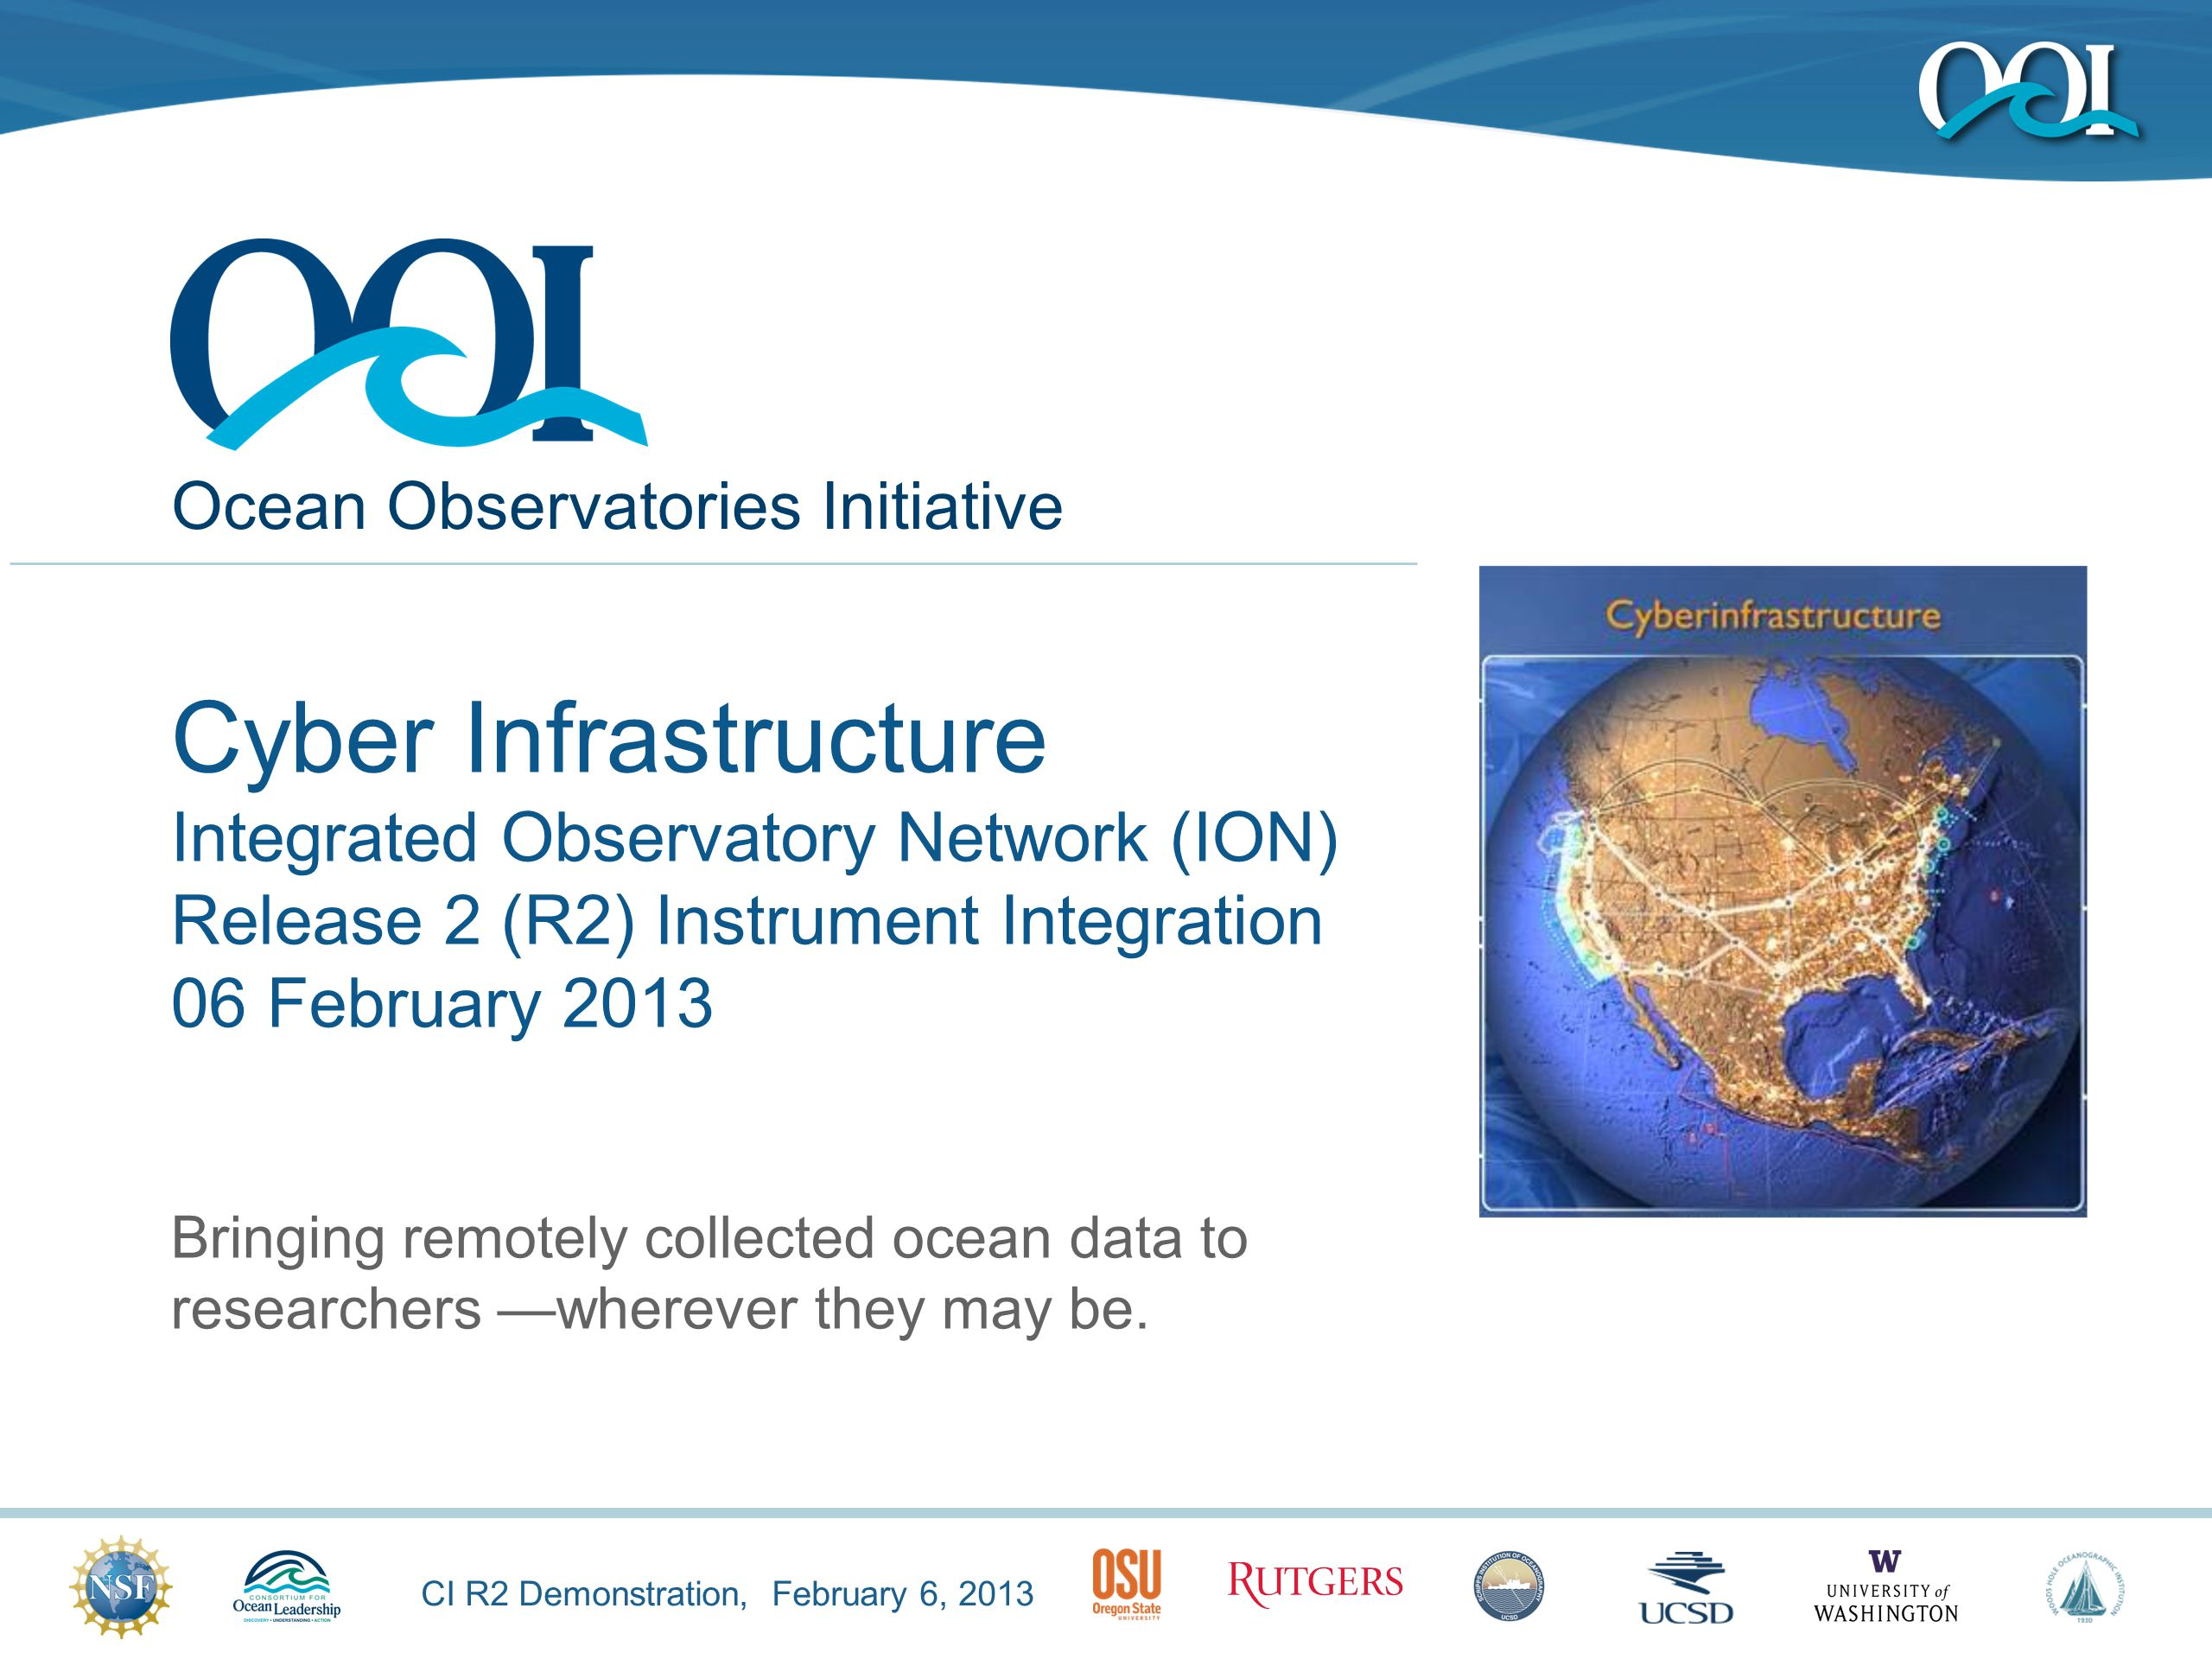 CI R2 Demonstration, February 6, 2013 Ocean Observatories Initiative Cyber Infrastructure Integrated Observatory Network (ION) Release 2 (R2) Instrument Integration 06 February 2013 Bringing remotely collected ocean data to researchers —wherever they may be.